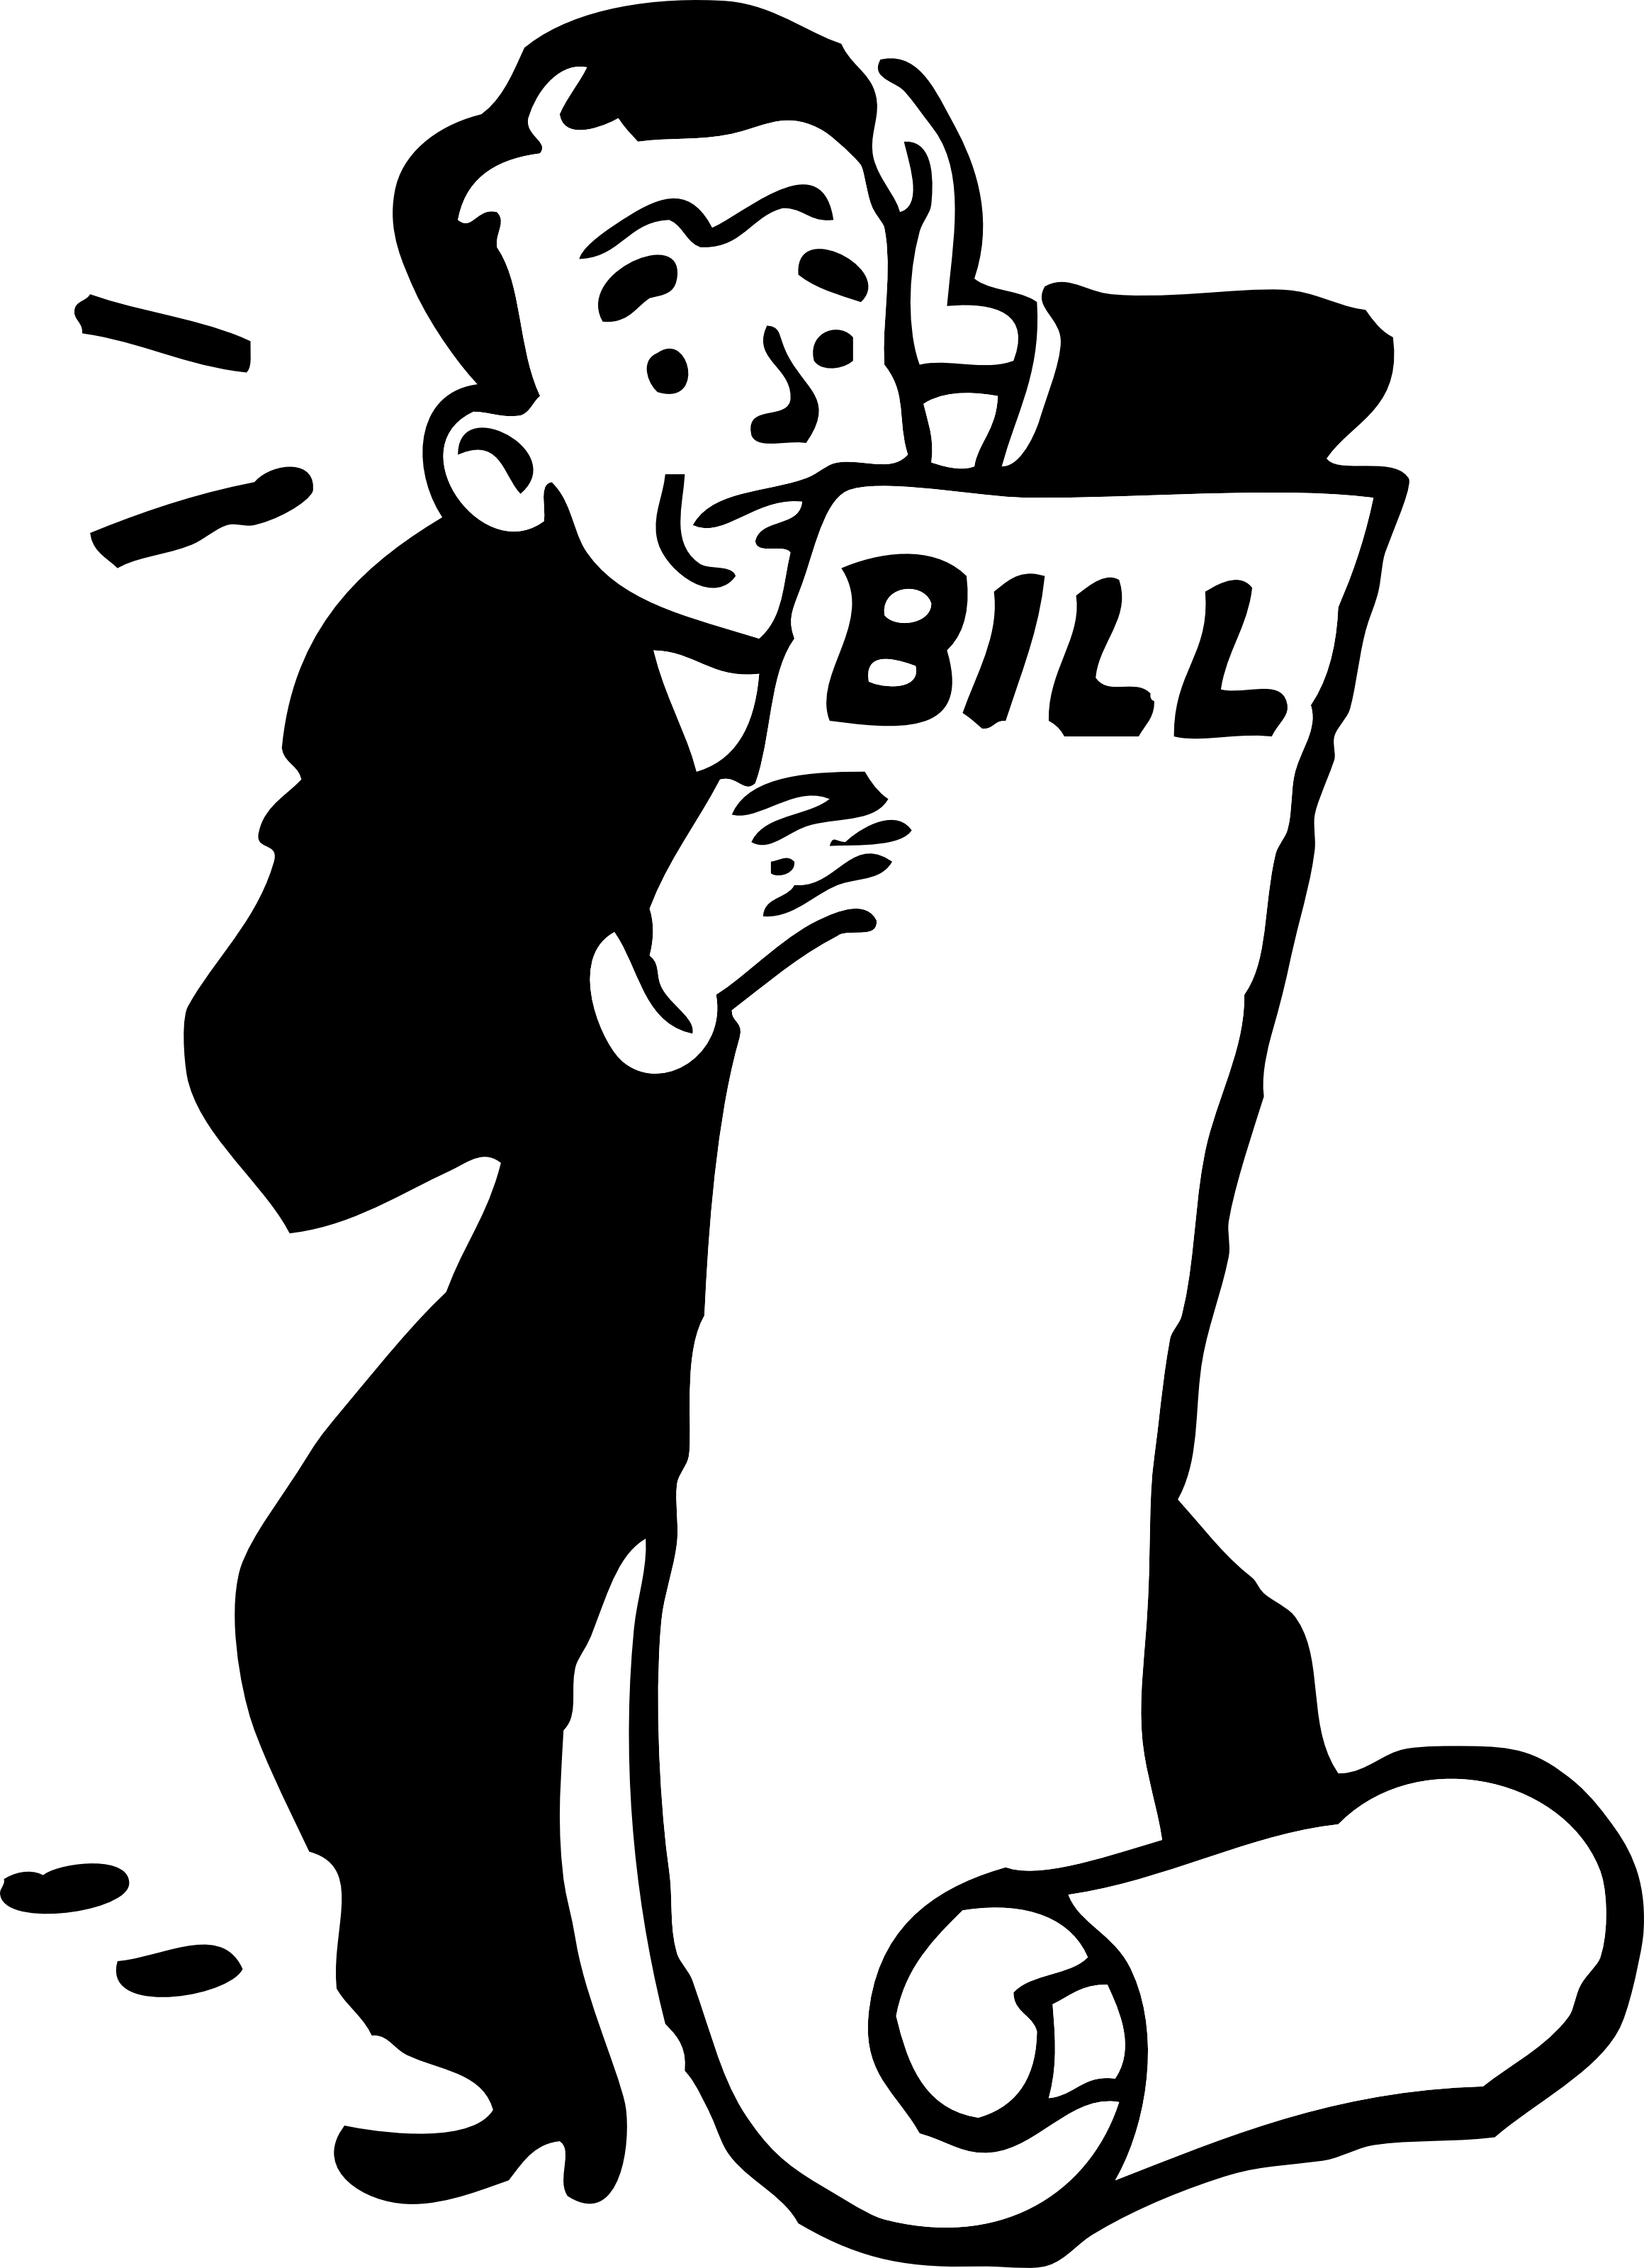 Bills clipart black and white. Dollar bill clip art